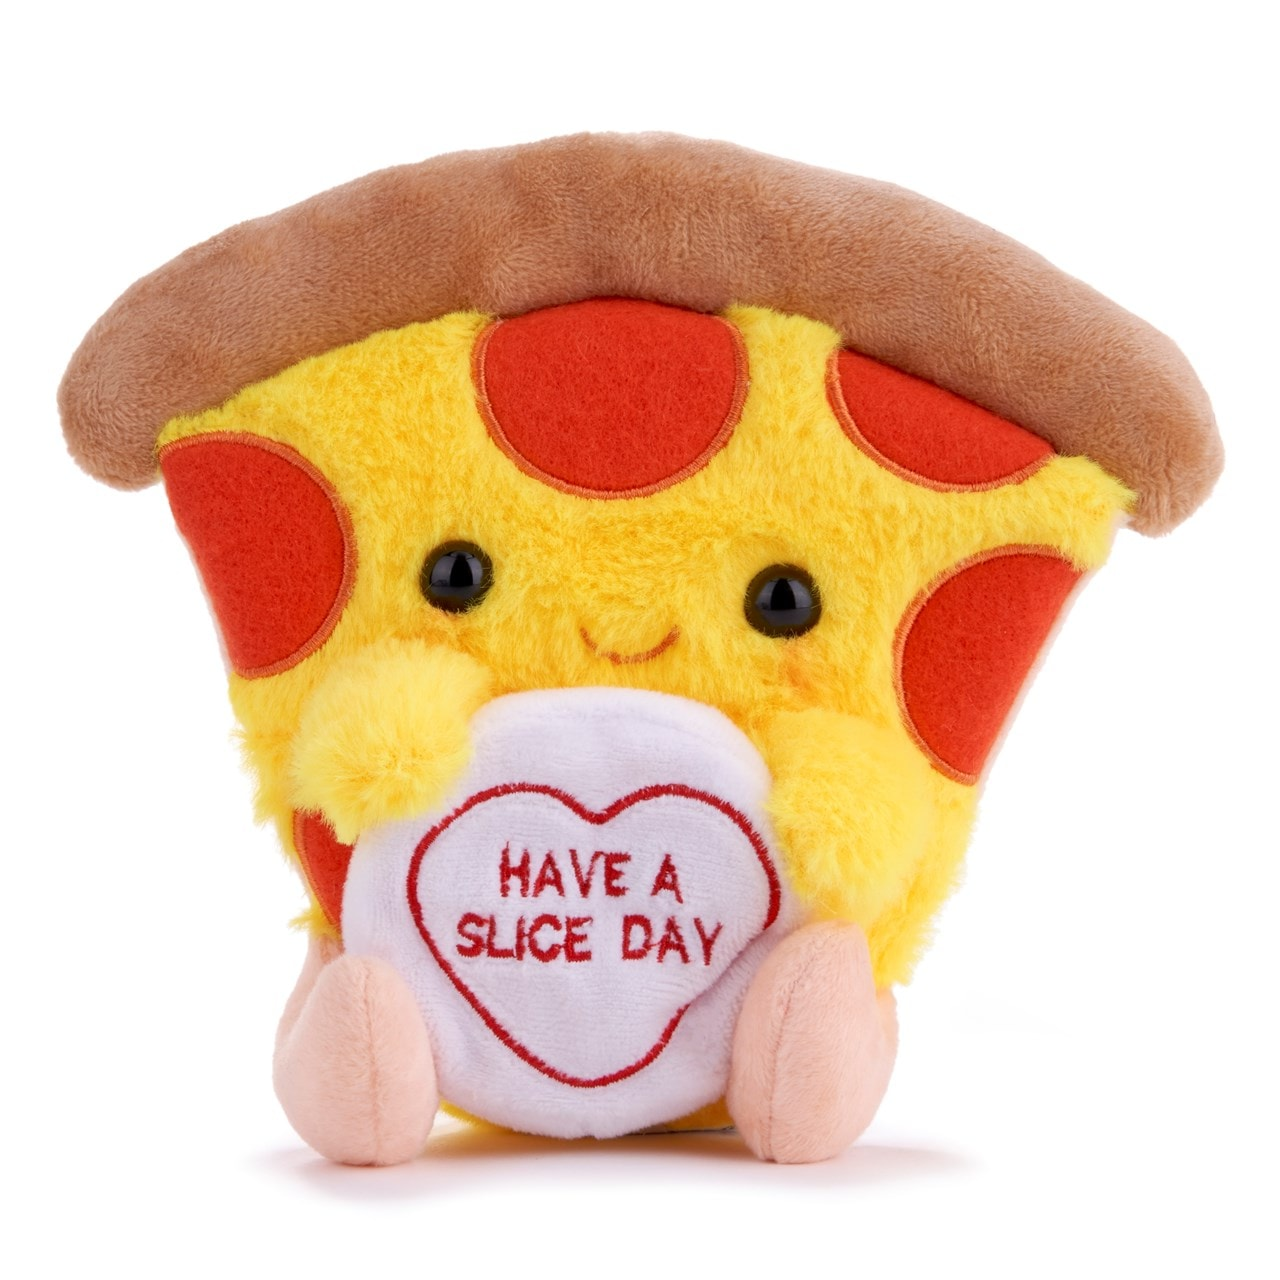 Patrick the Pizza: Swizzles Love Hearts Collection Plush Toy - 1